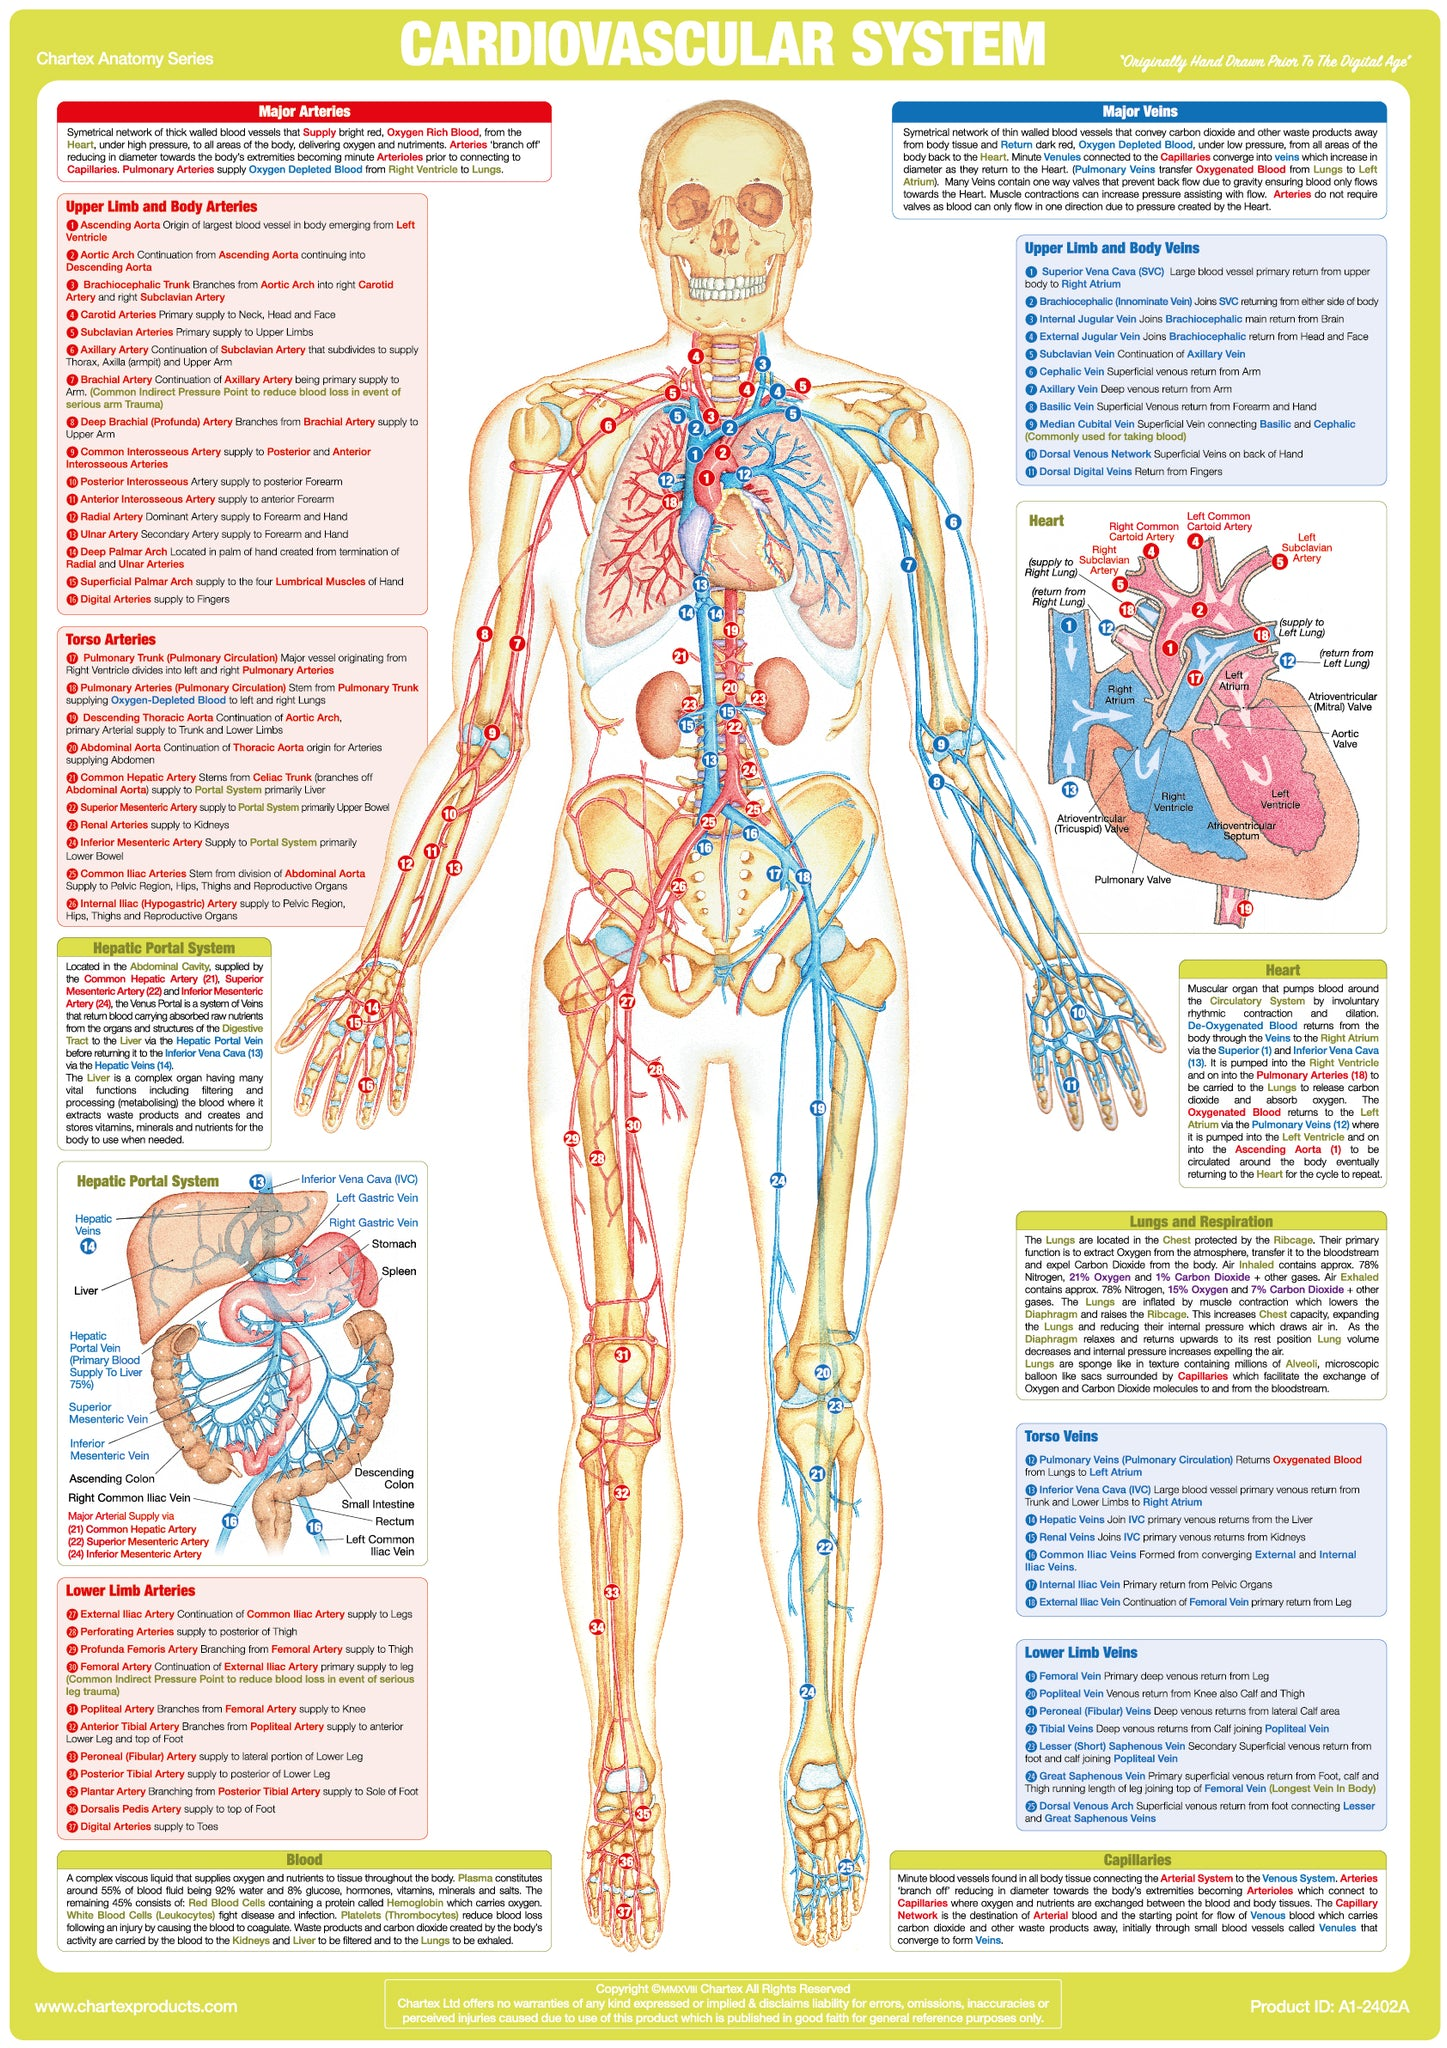 Cardiovascular System Chart